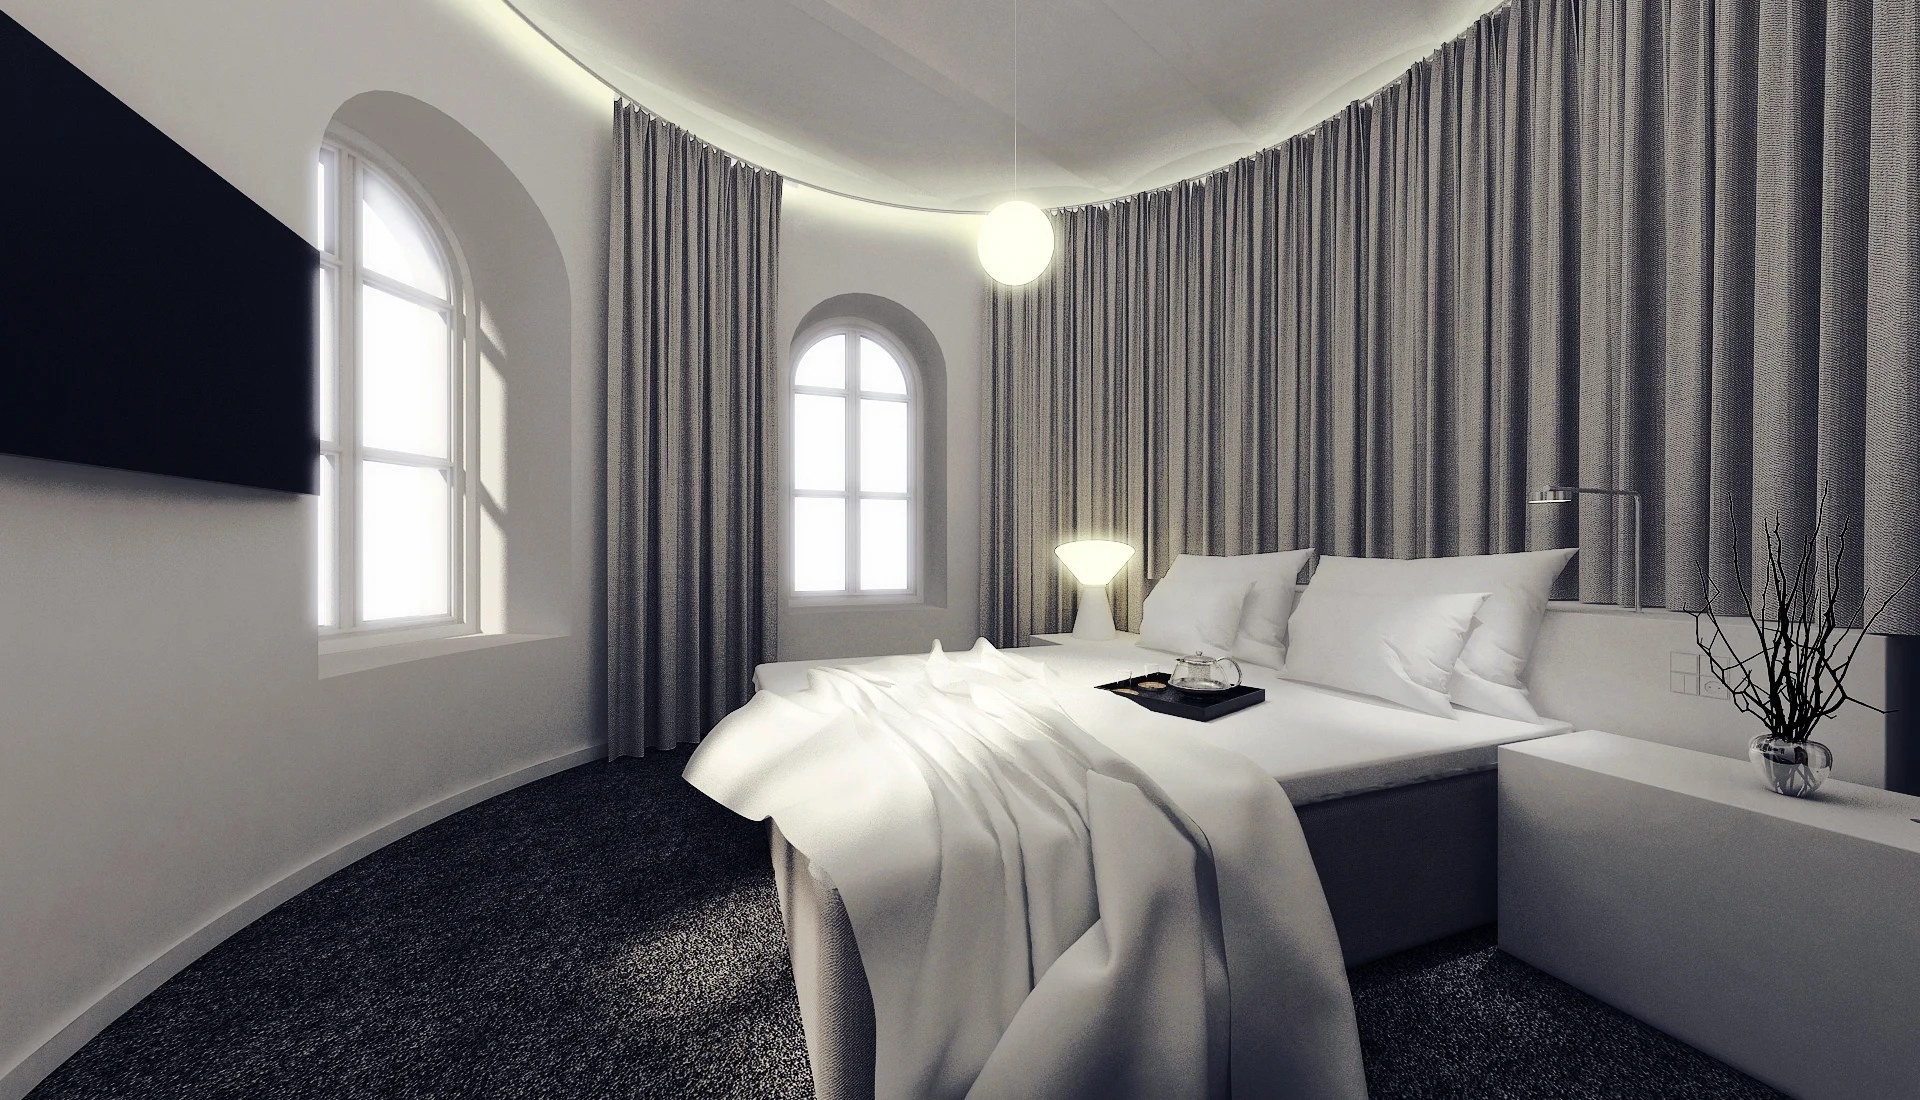 These Hotels Have the World's First Self-Cleaning Rooms